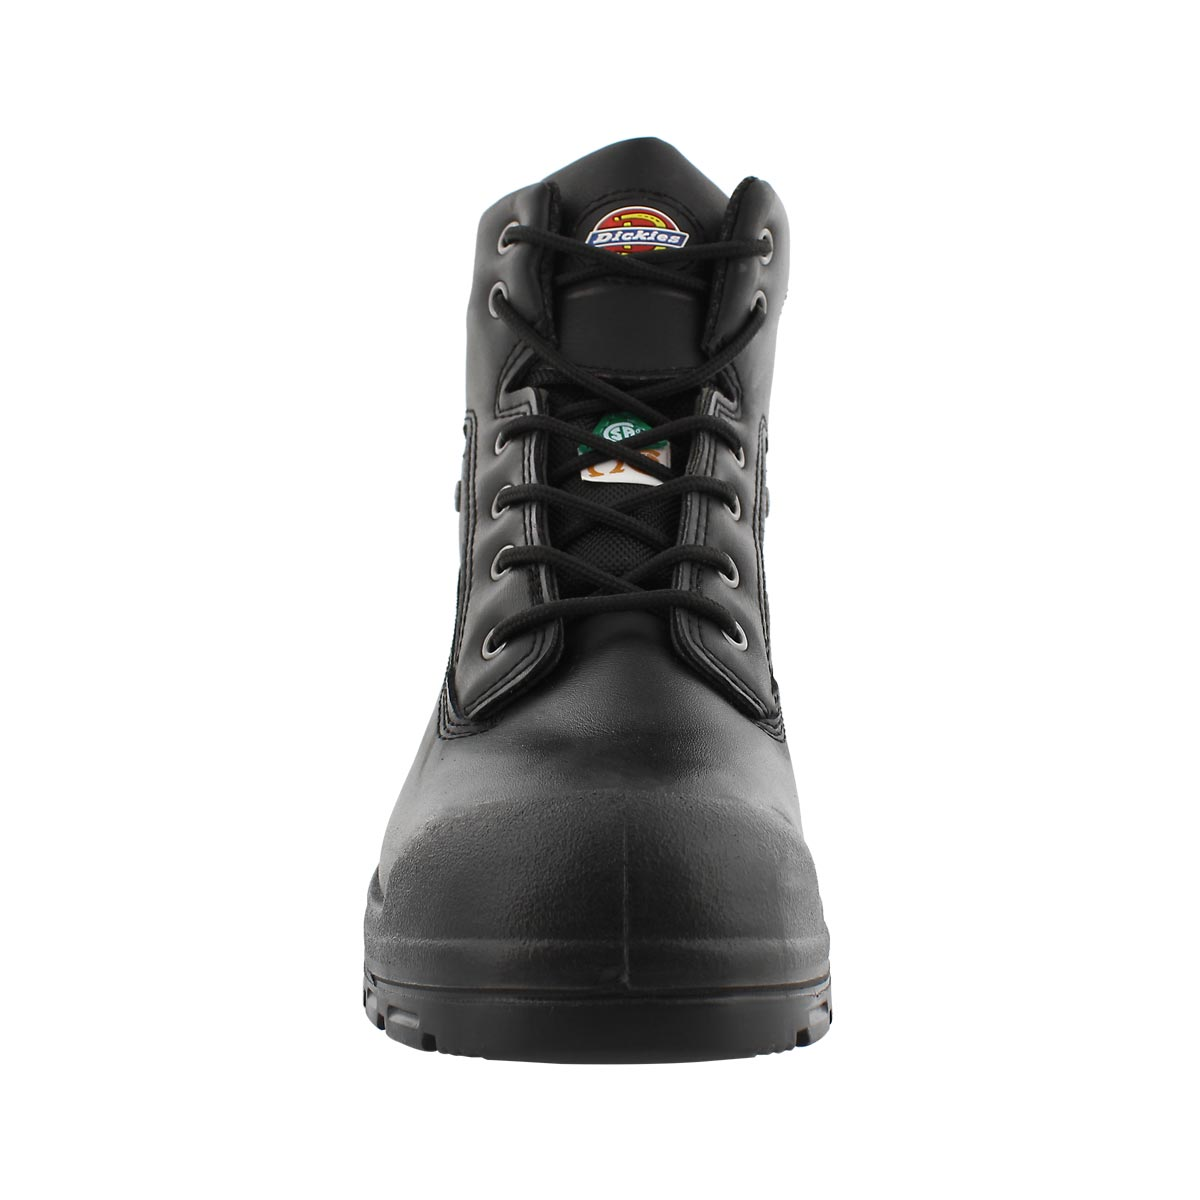 Mns Blaster black lace up 6